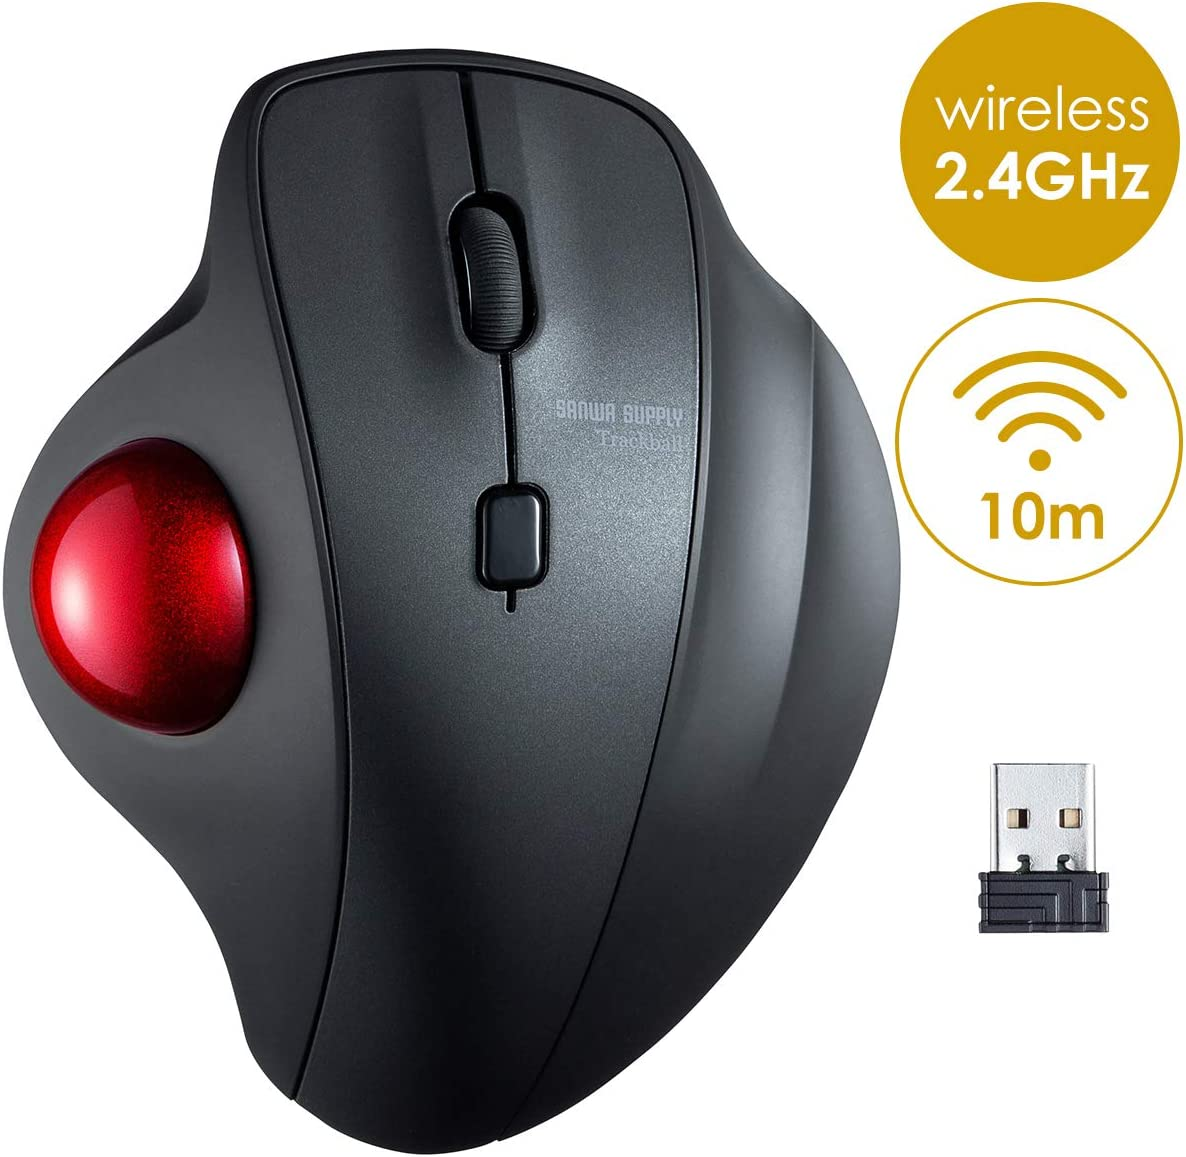 SANWA (Japan Brand) 2.4G Wireless Ergonomic Trackball Mouse, Silent Noiseless Optical Sensor Mice, (600/800/1200/1600 Adjustable DPI, 34mm trackball) Compatible with MacBook, Laptop, Windows, Mac OS